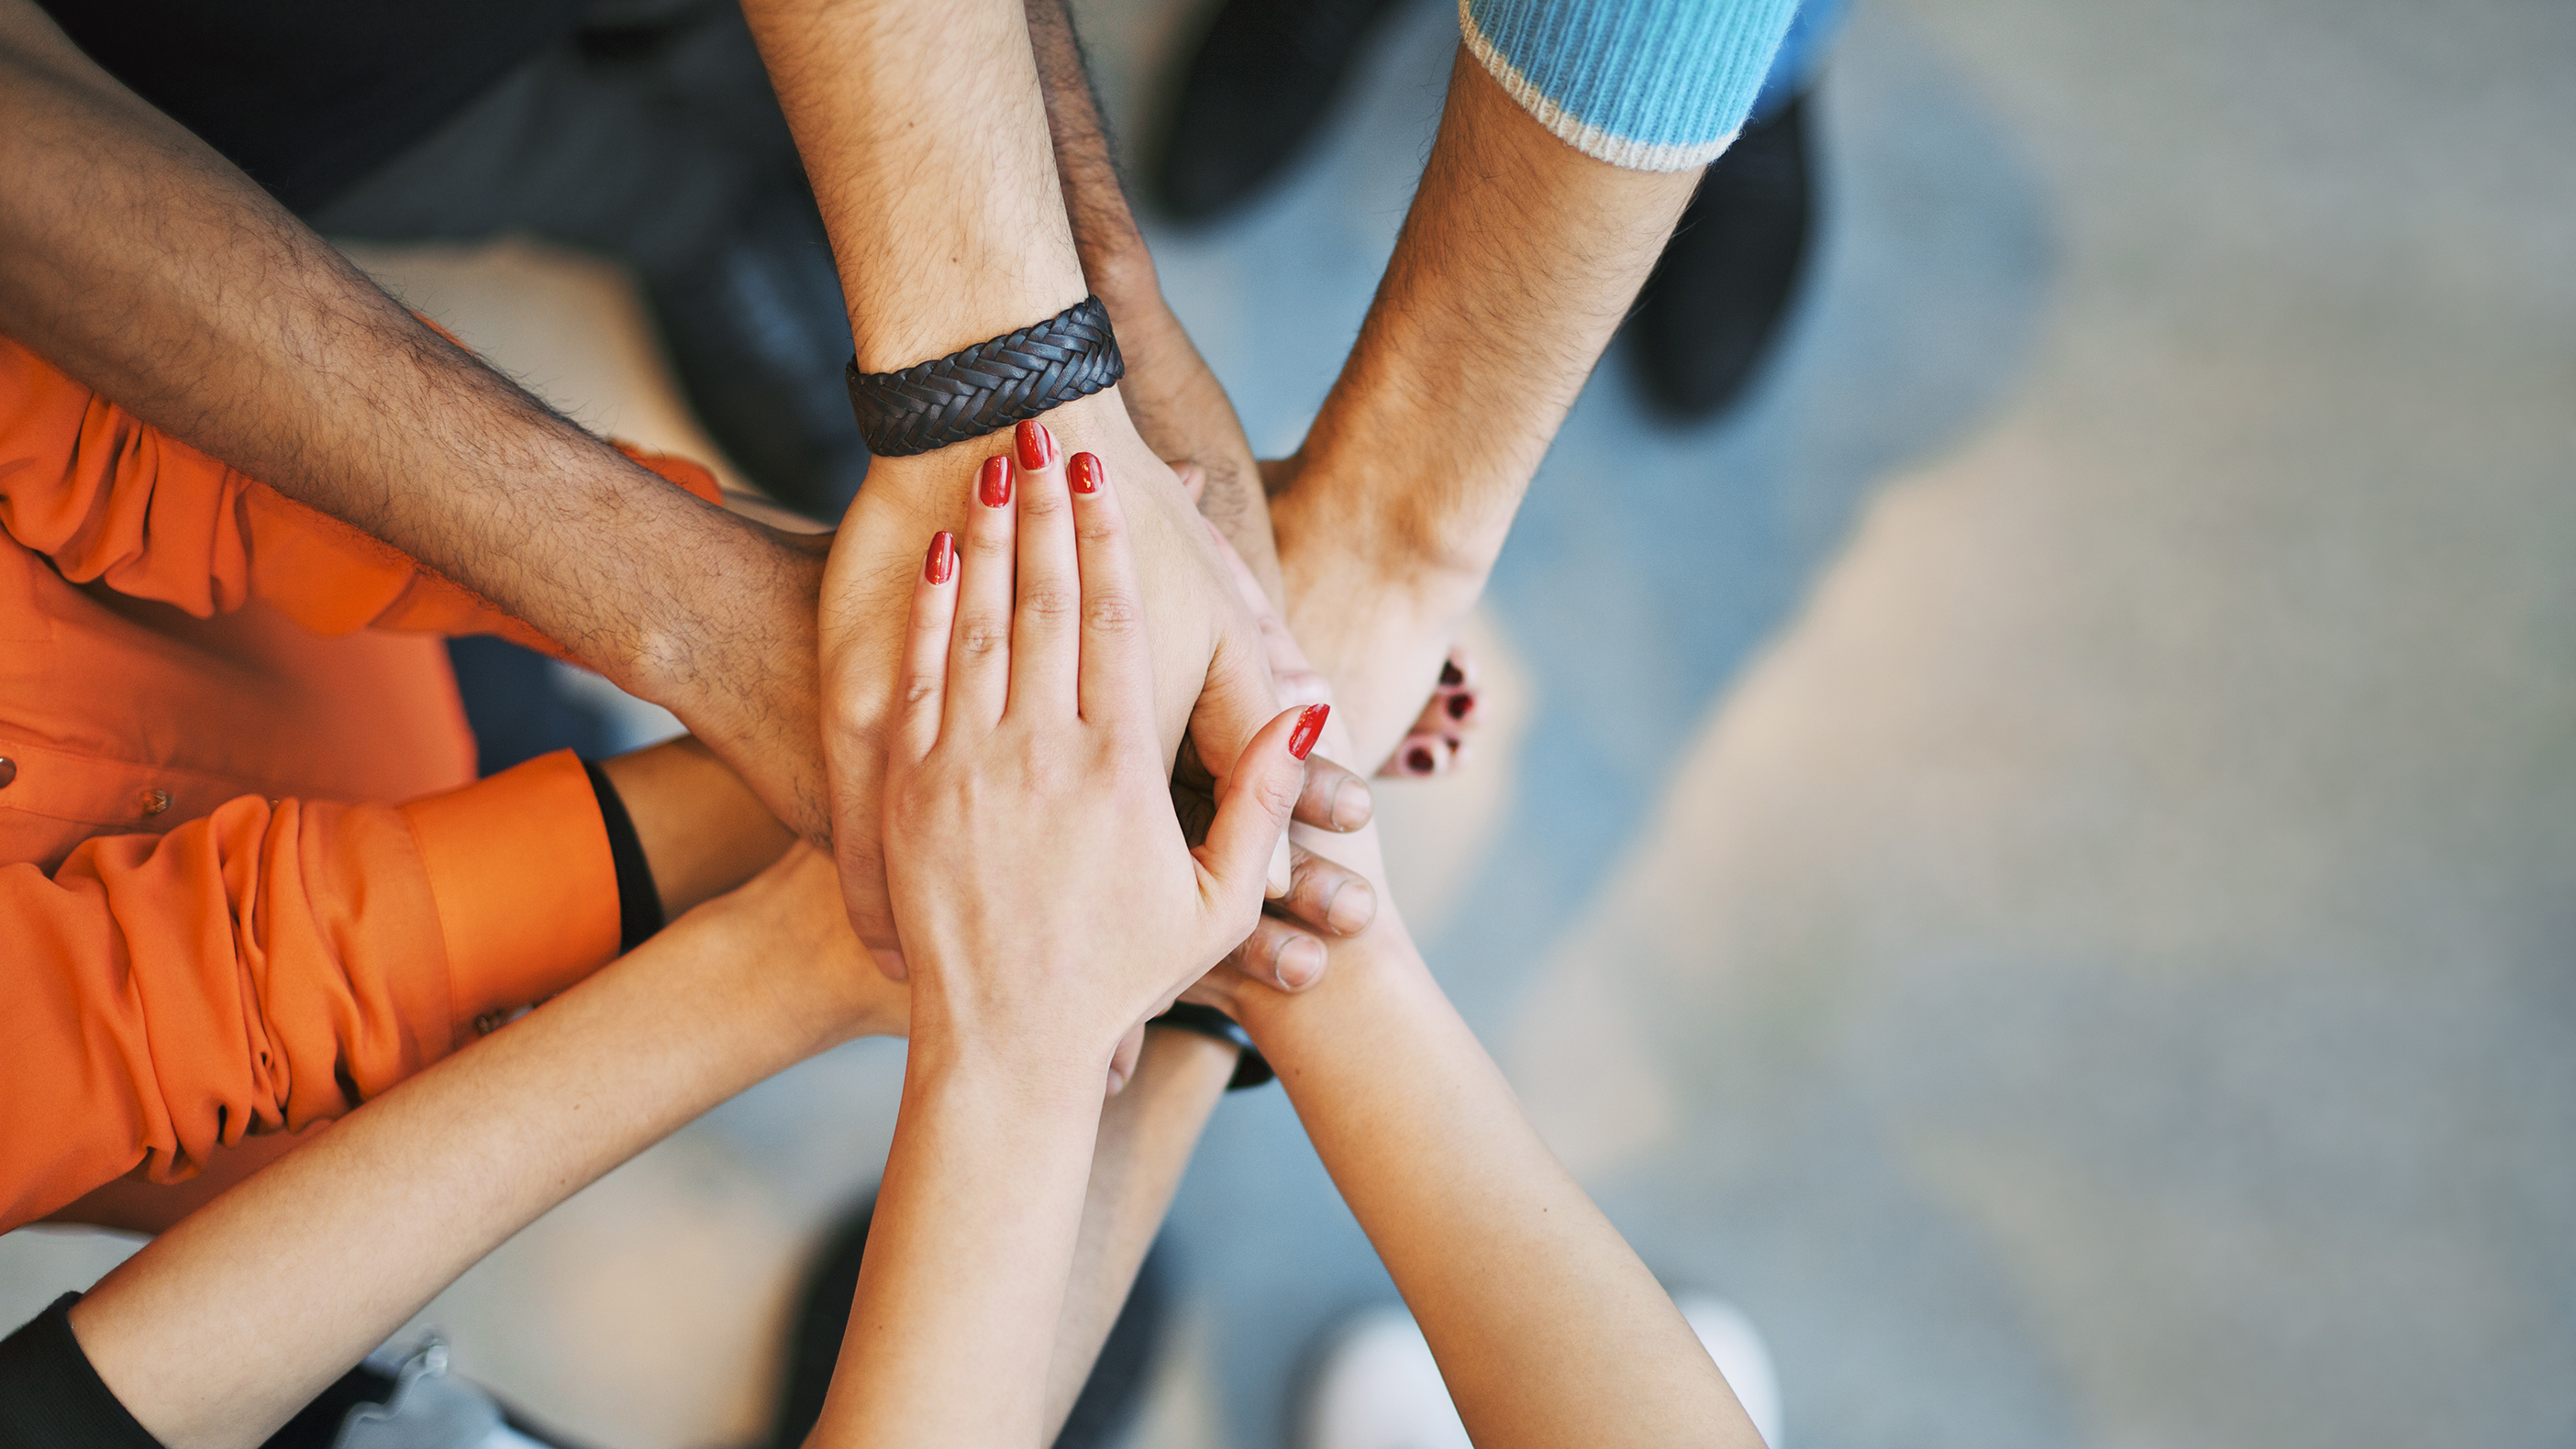 5G: Managing component-level risks to commercial success